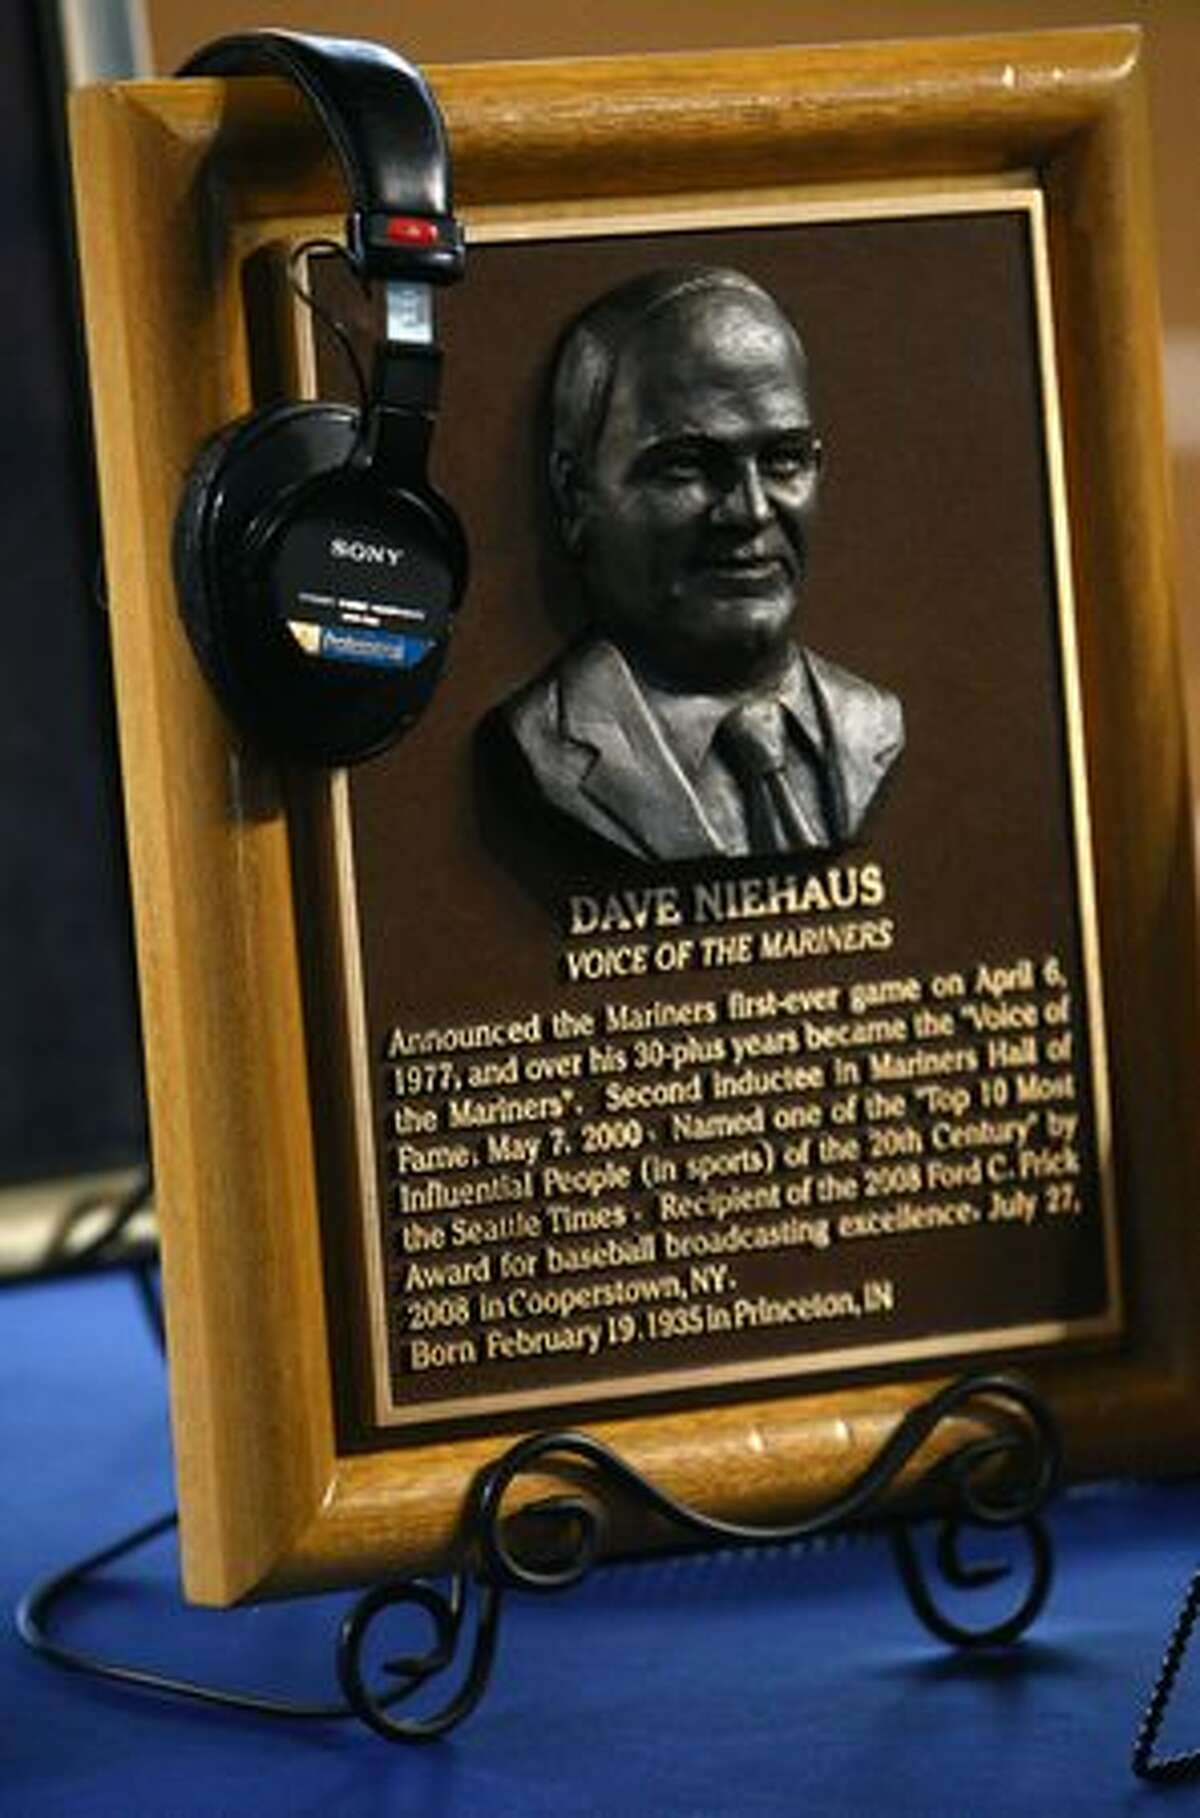 Dave Niehaus' headset rests on a plaque during a tribute for Niehaus on Saturday at Safeco Field in Seattle. Niehuas died earlier in the week from a heart attack. The popular play-by-play announcer was the voice of the Seattle Mariners since the team's inaugural season in 1977.